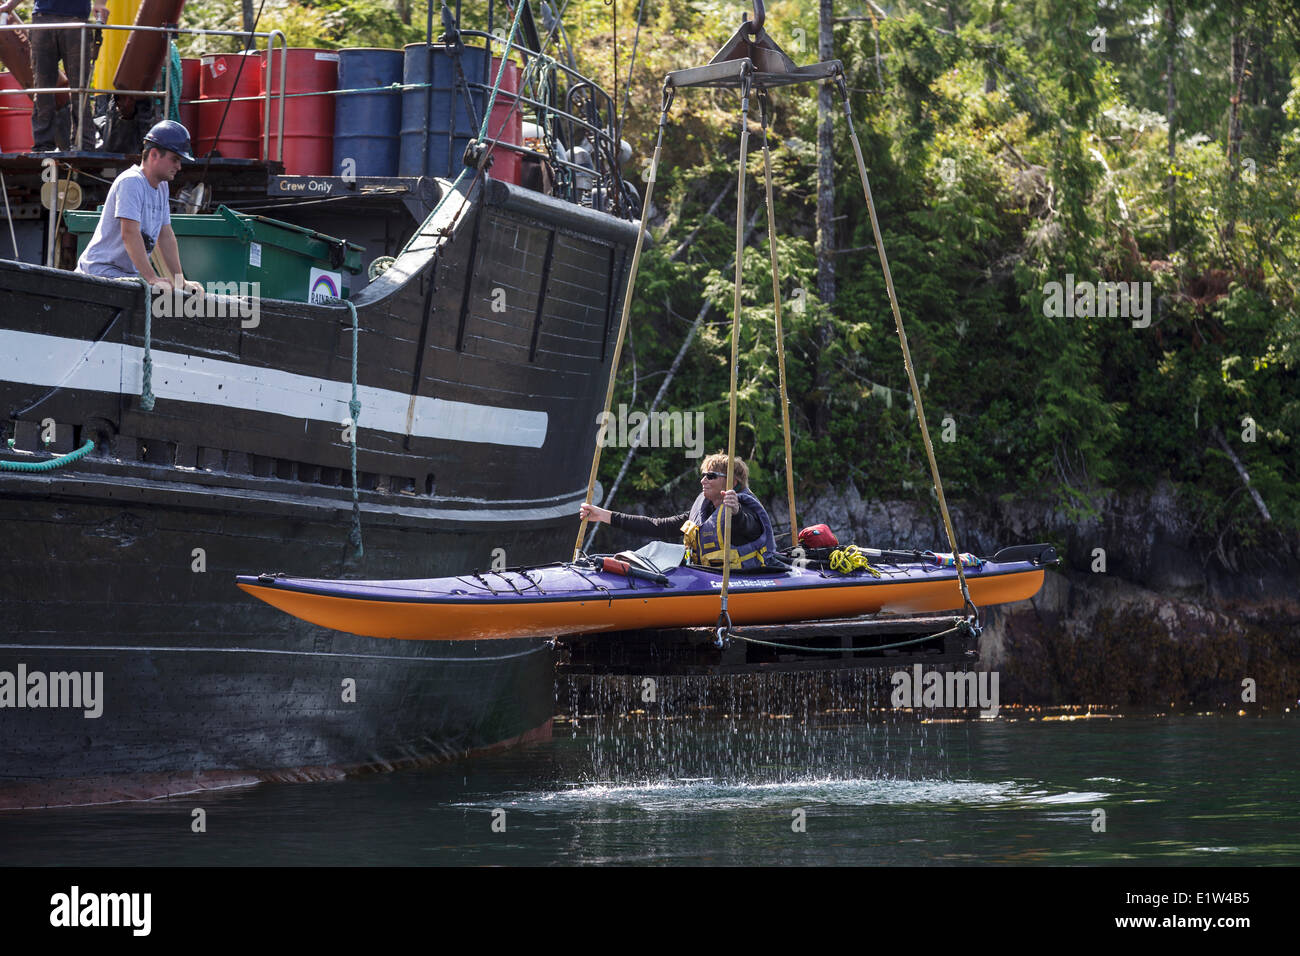 A kayaker is lifted onto the supply ship the Uchuck 111 at Flynn's Cove, Nootka Island, British Columbia, Canada. - Stock Image